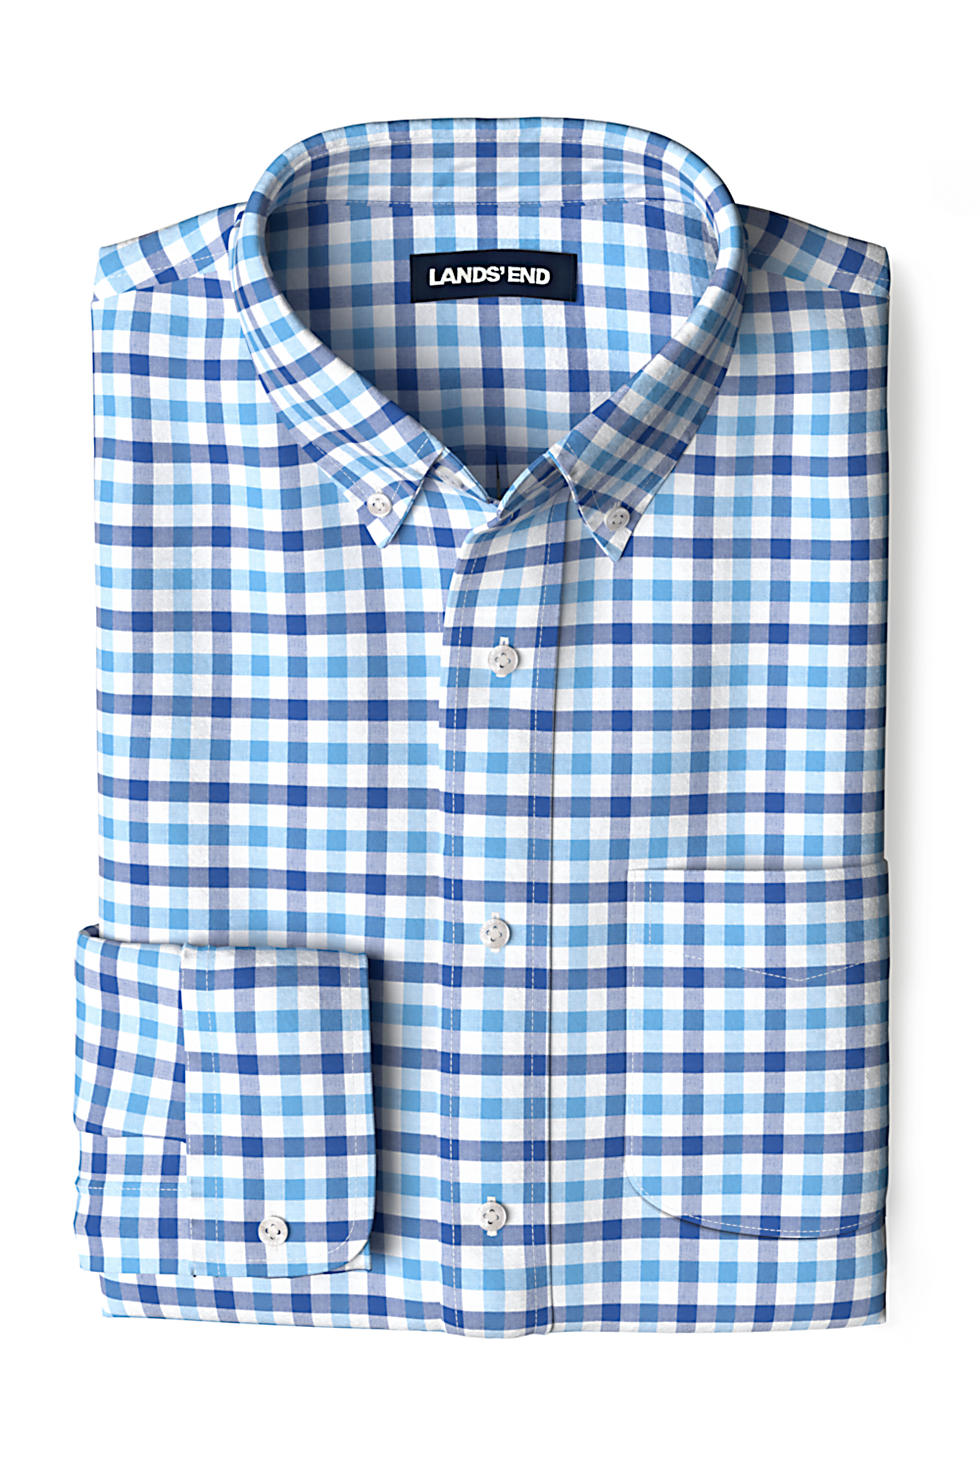 Lands End Mens Traditional Fit Essential Lightweight Poplin Shirt